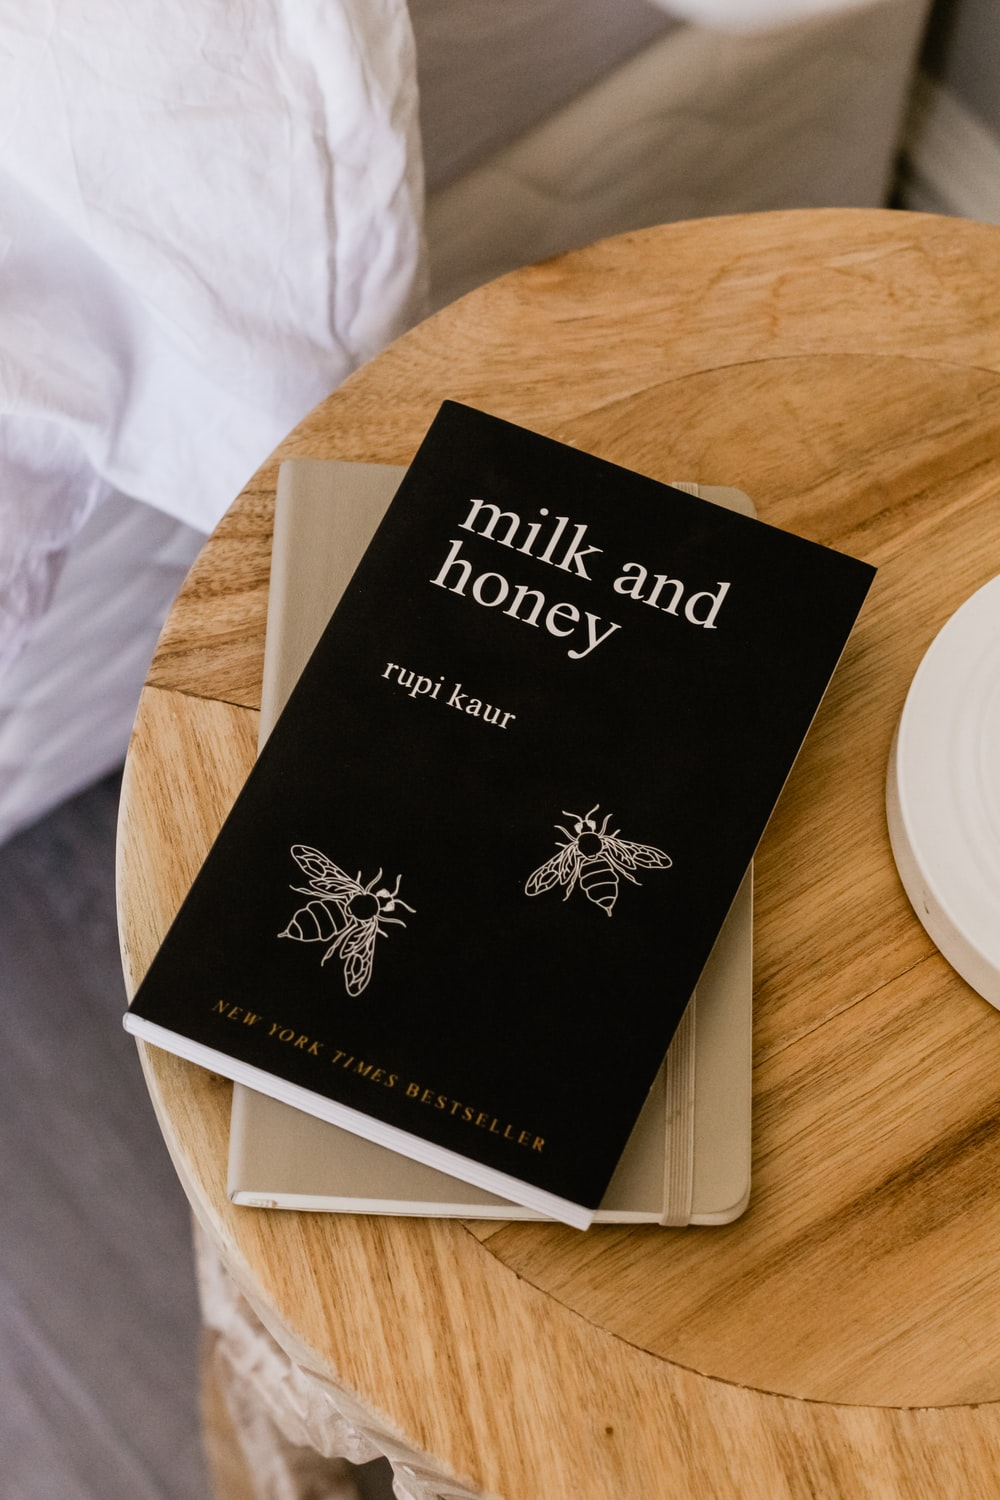 Milk and Honey by Rupi Kaur book on side table